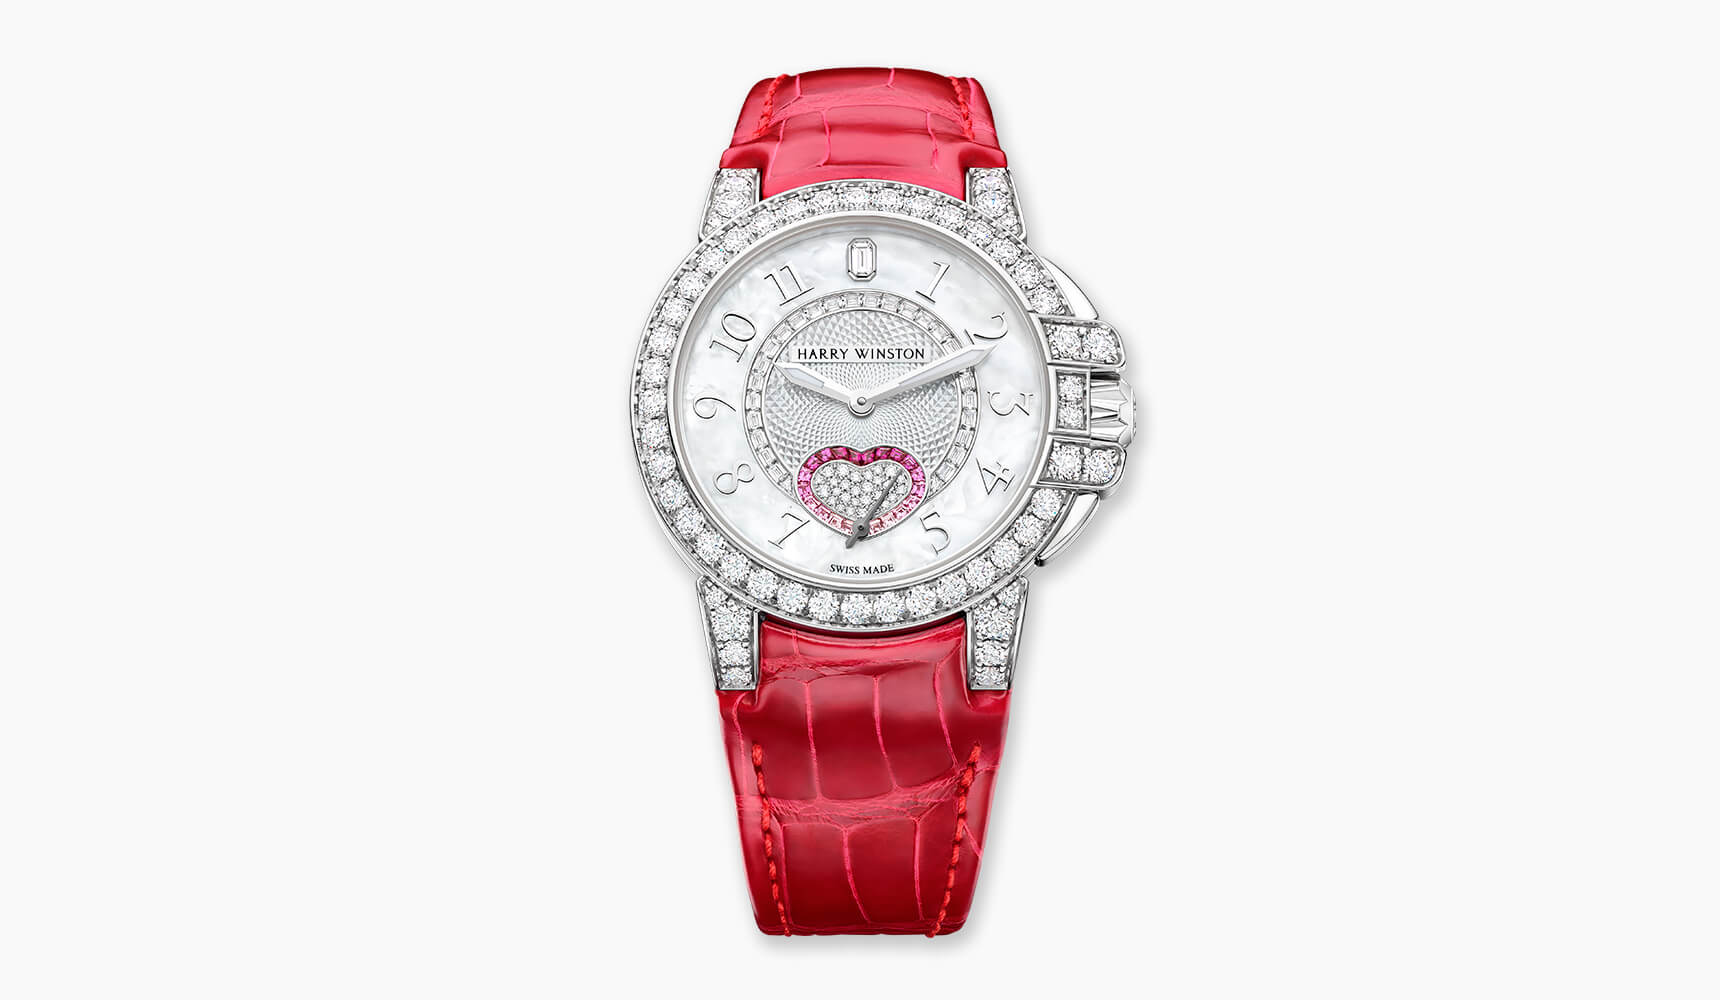 Harry Winston is proud to introduce a romantic Valentine's Day timepiece in its sporty Ocean Collection